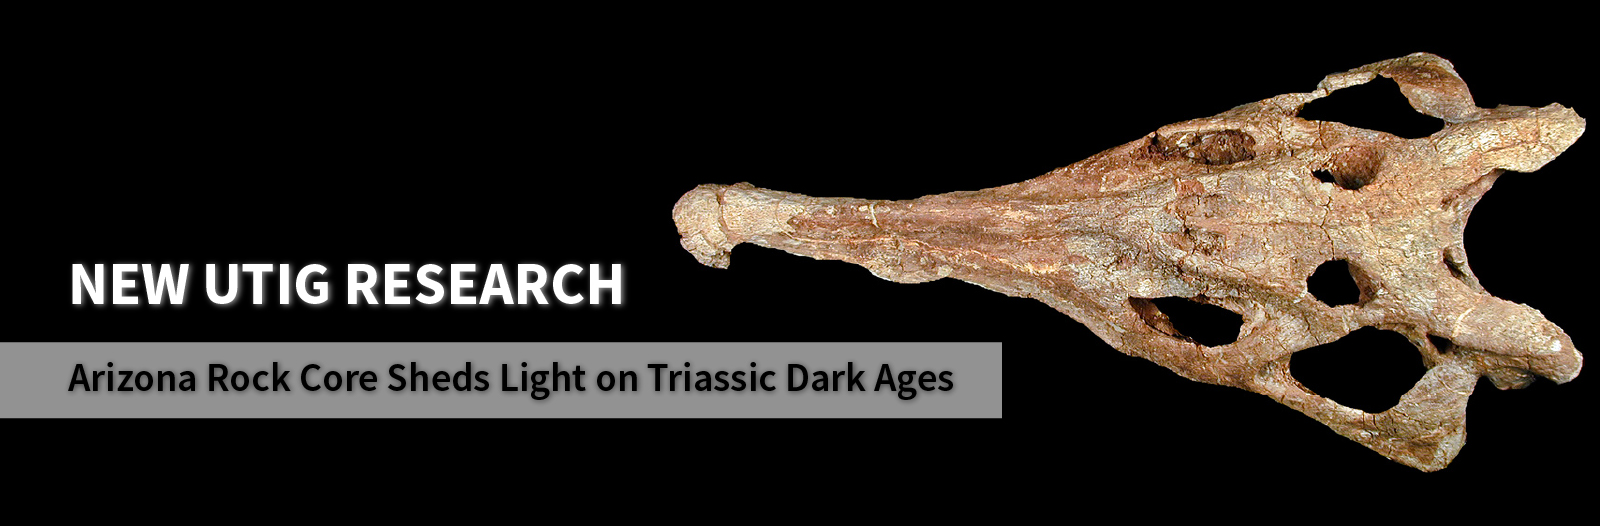 Banner for Arizona Rock Core Sheds Light on Triassic Dark Ages